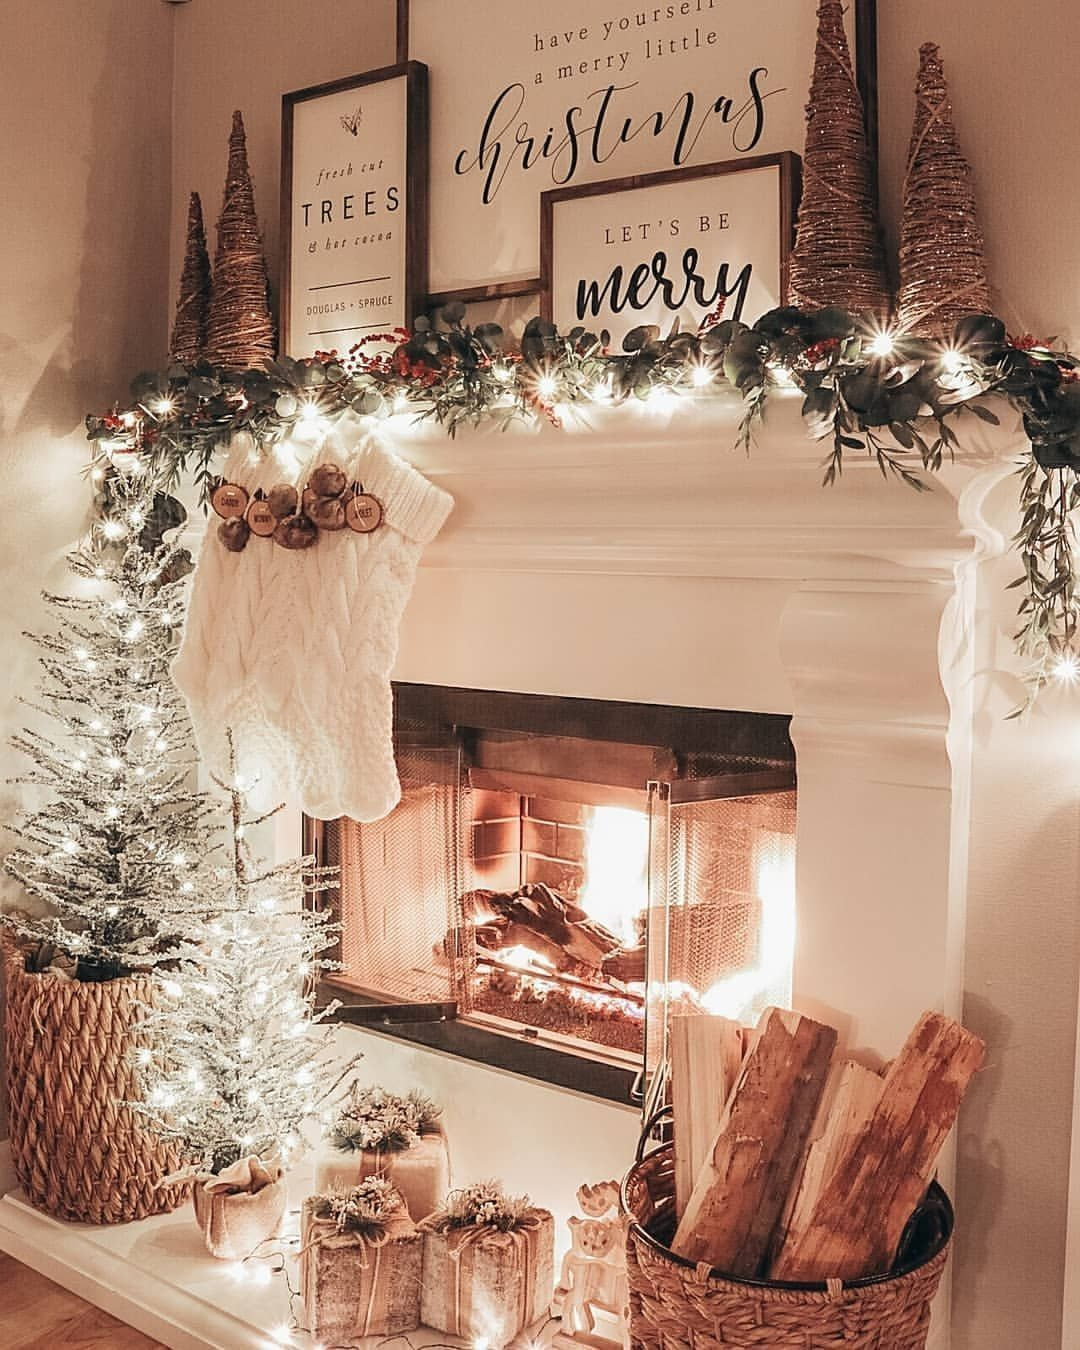 36 Winter Wonderland Ideas For Best Mantel Design Homeridian Com Christmas Mantel Decorations Christmas Fireplace Holiday Decor